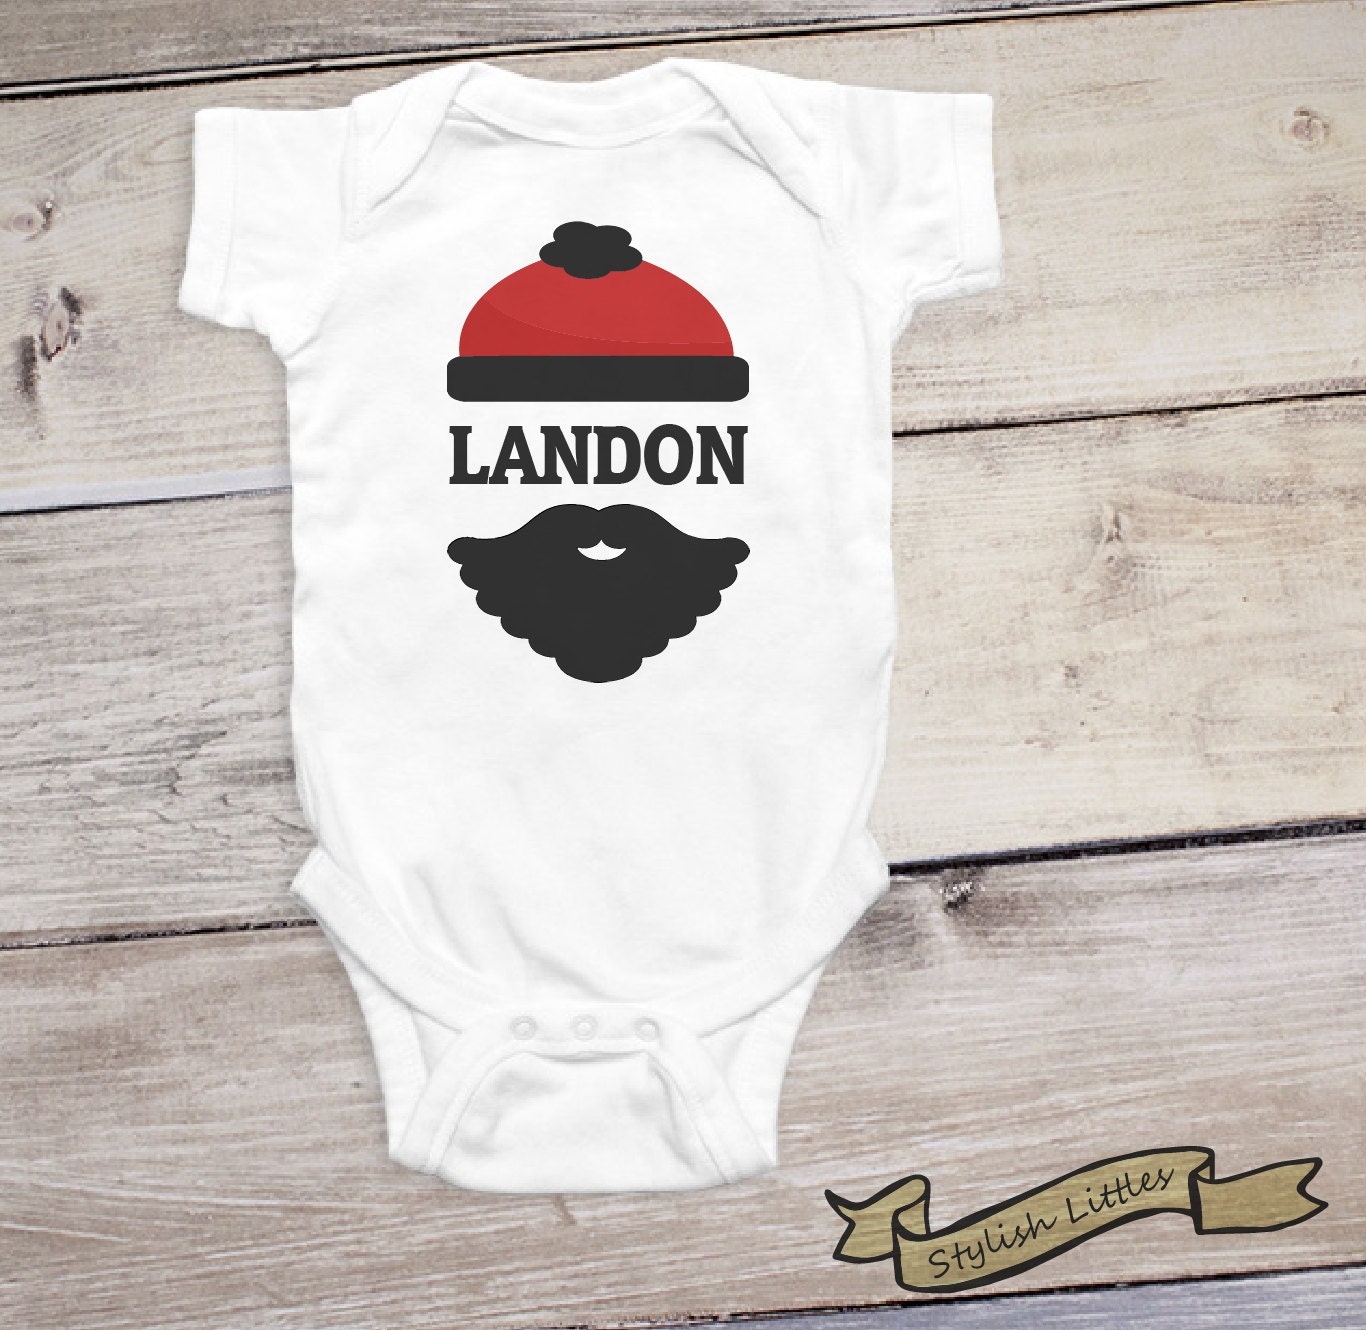 Personalized baby gifts for boy onesie lumberjack baby outfit personalized baby gifts for boy onesie lumberjack baby outfit custom name shirt personalized onesie boy negle